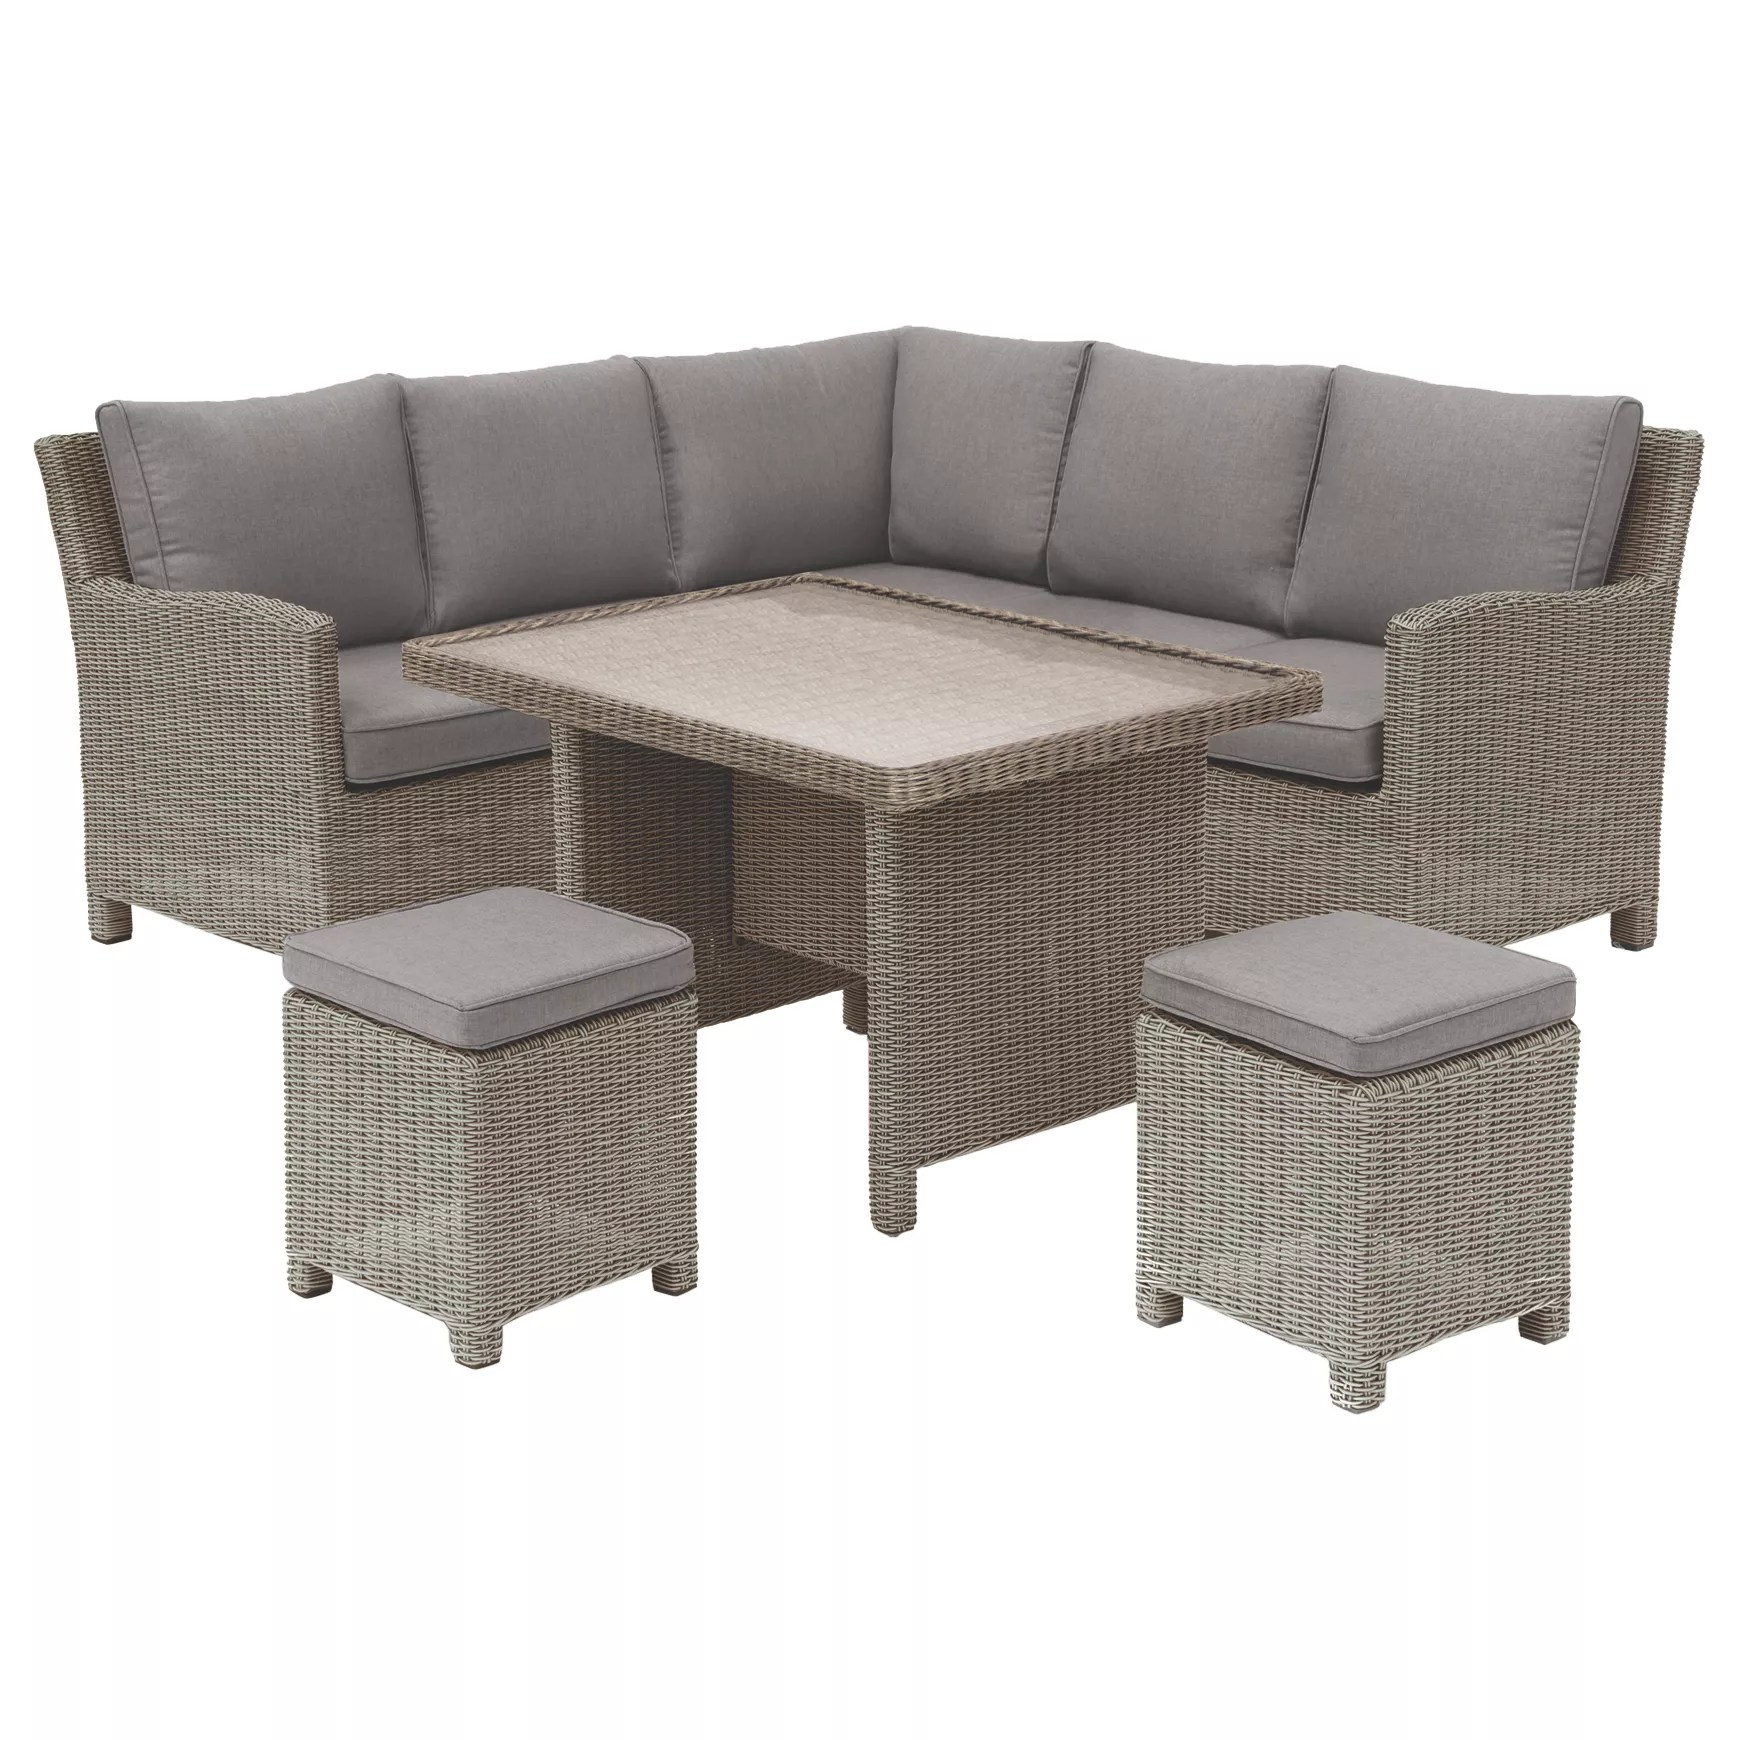 Kettler Lounge Kettler Palma Garden Mini Lounge Dining Set With Glass Top Table Rattan